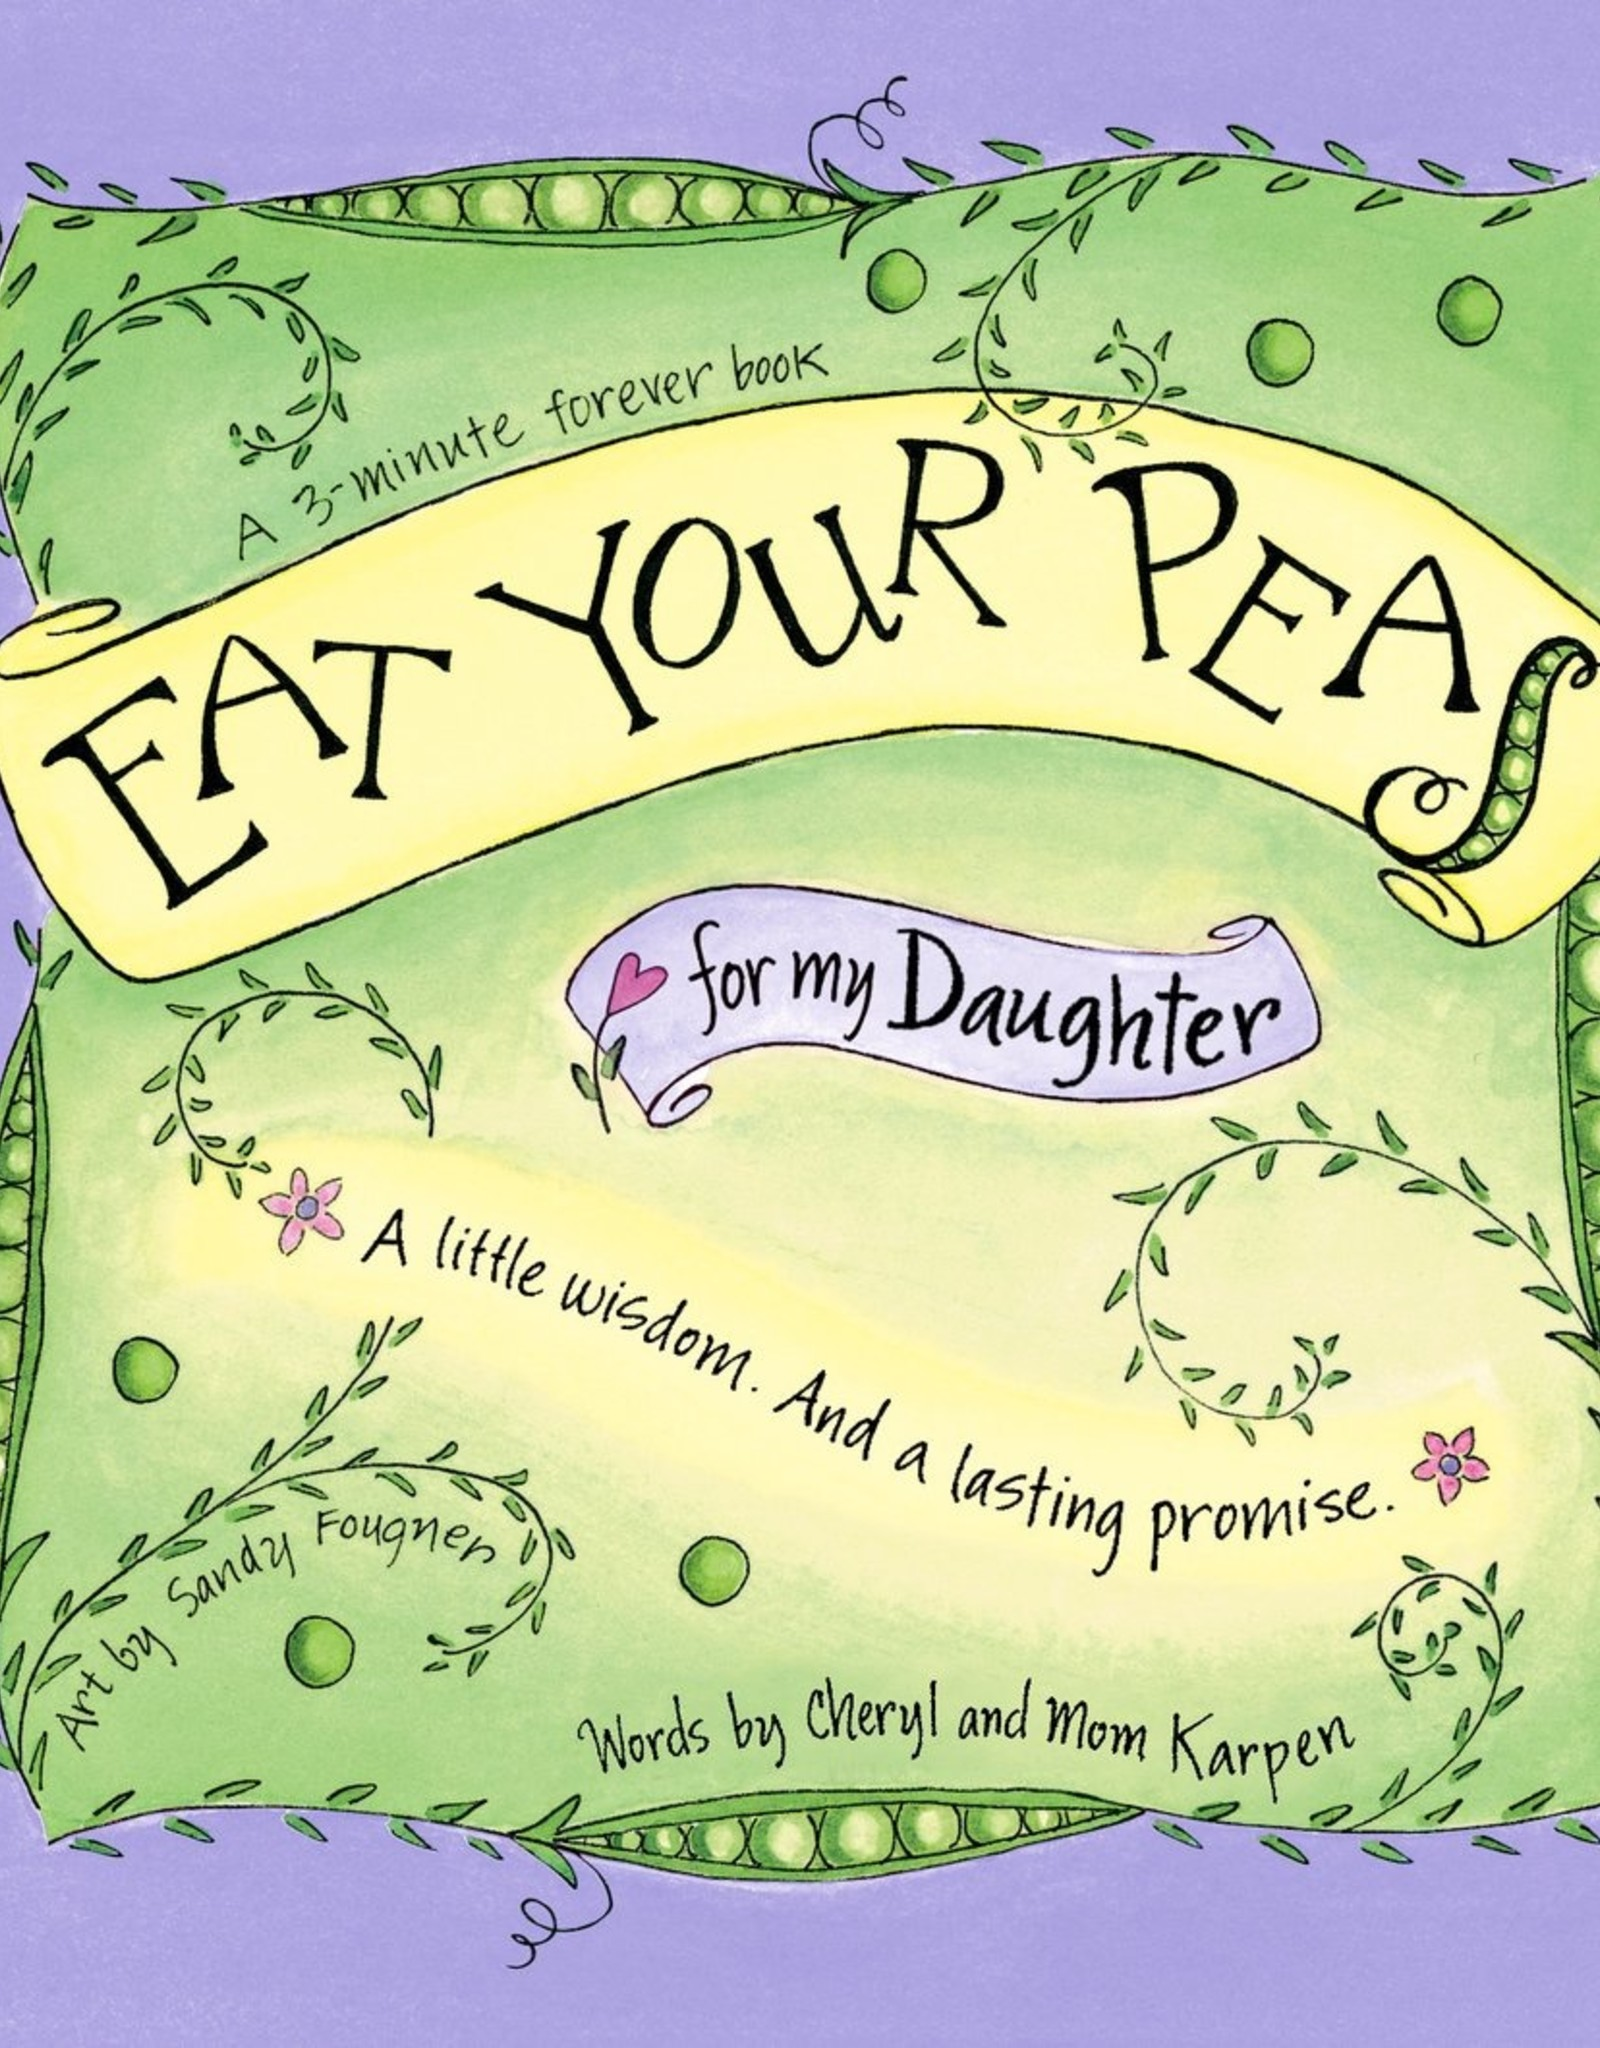 Eat Your Peas for Daughter